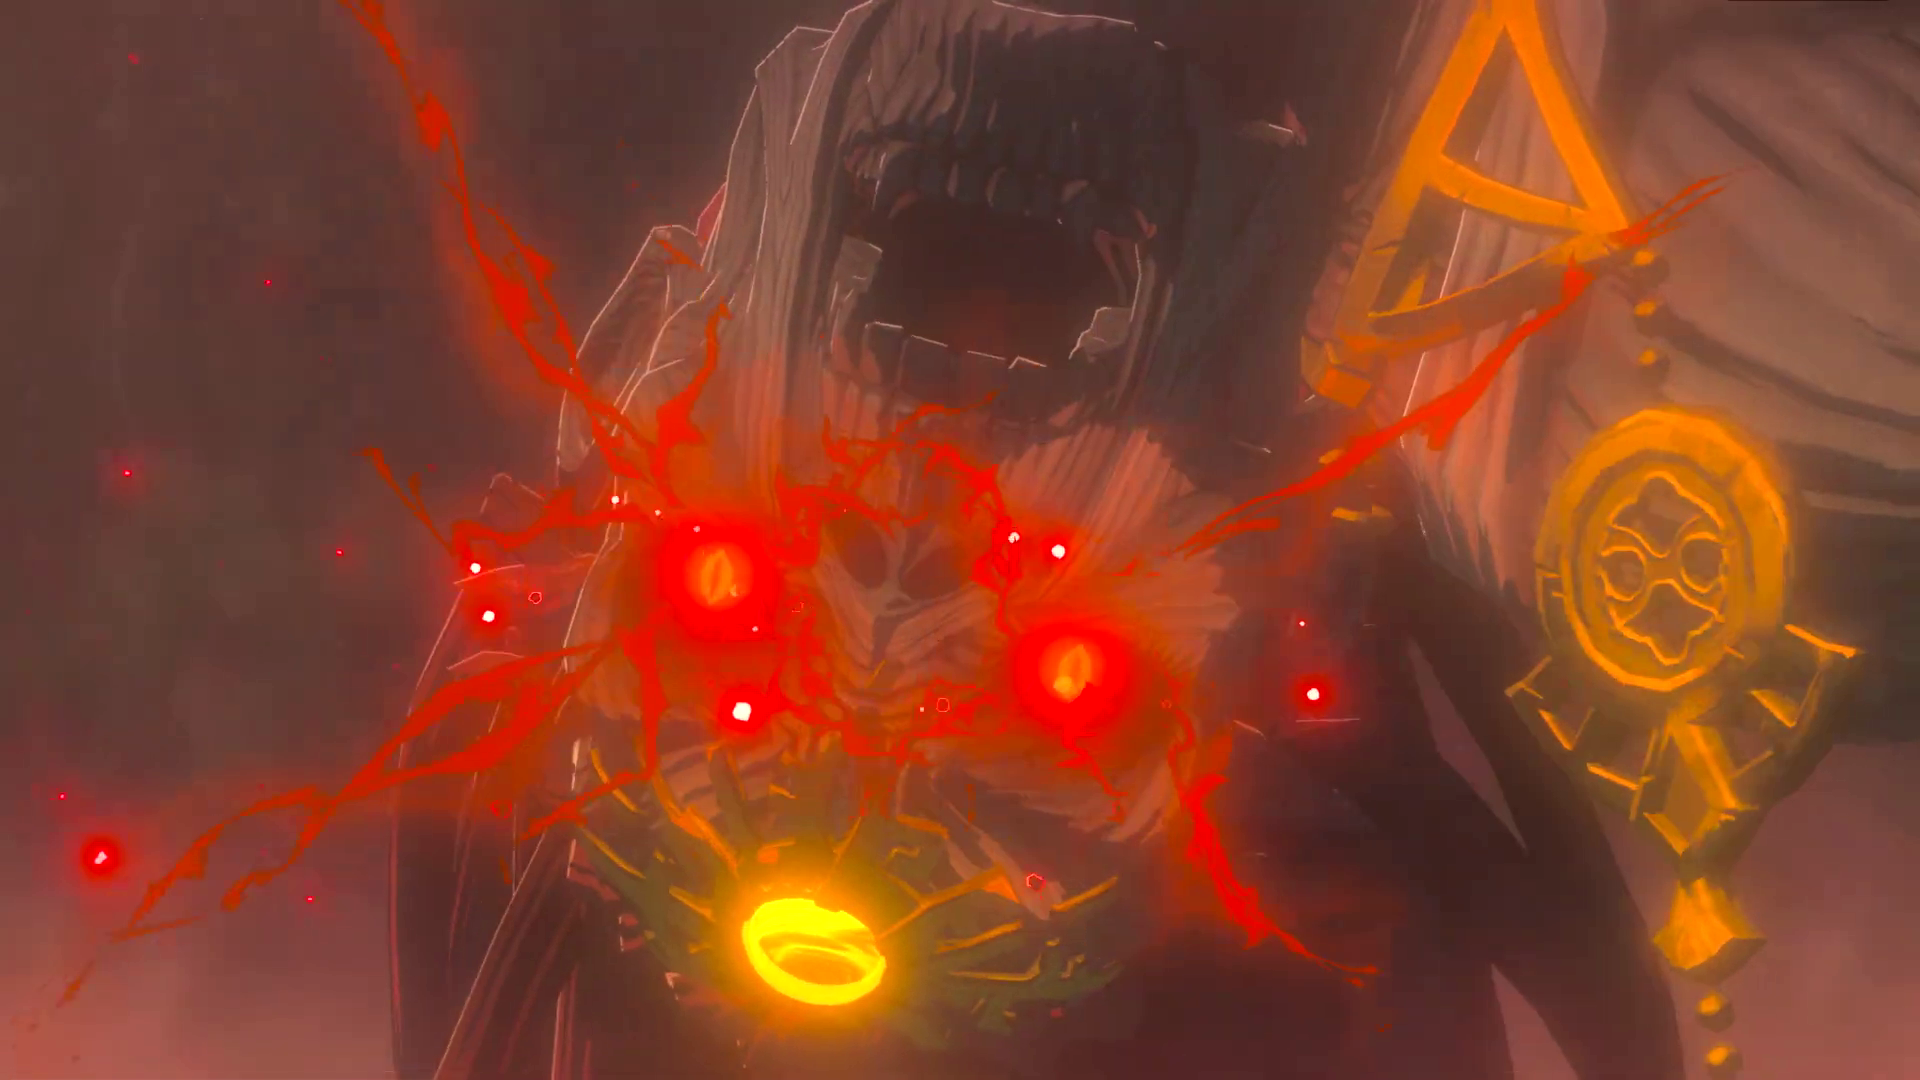 Breath Of The Wild 2 Twili Does The Botw Sequel Link To